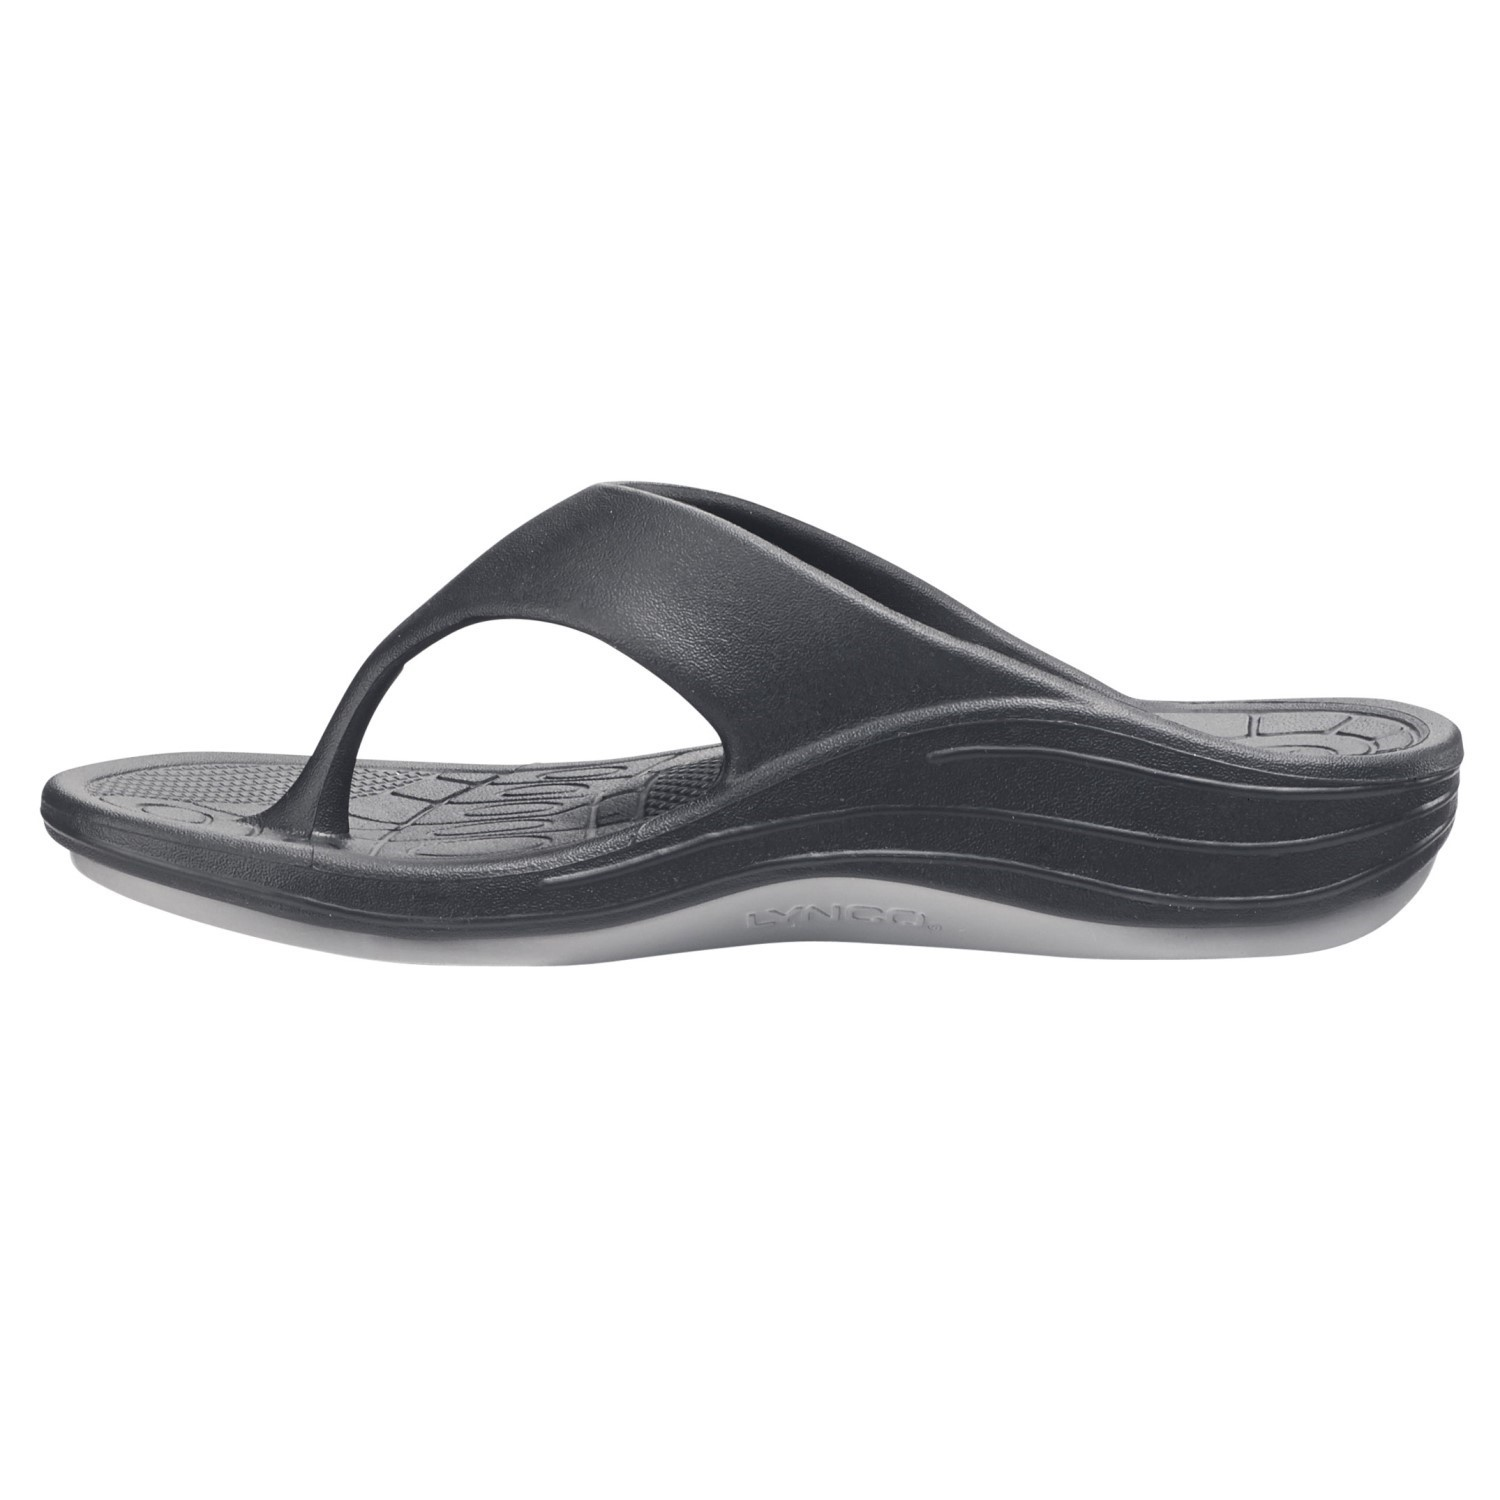 71084e658f83 Aetrex Lynco Flips - Womens Thongs - Black